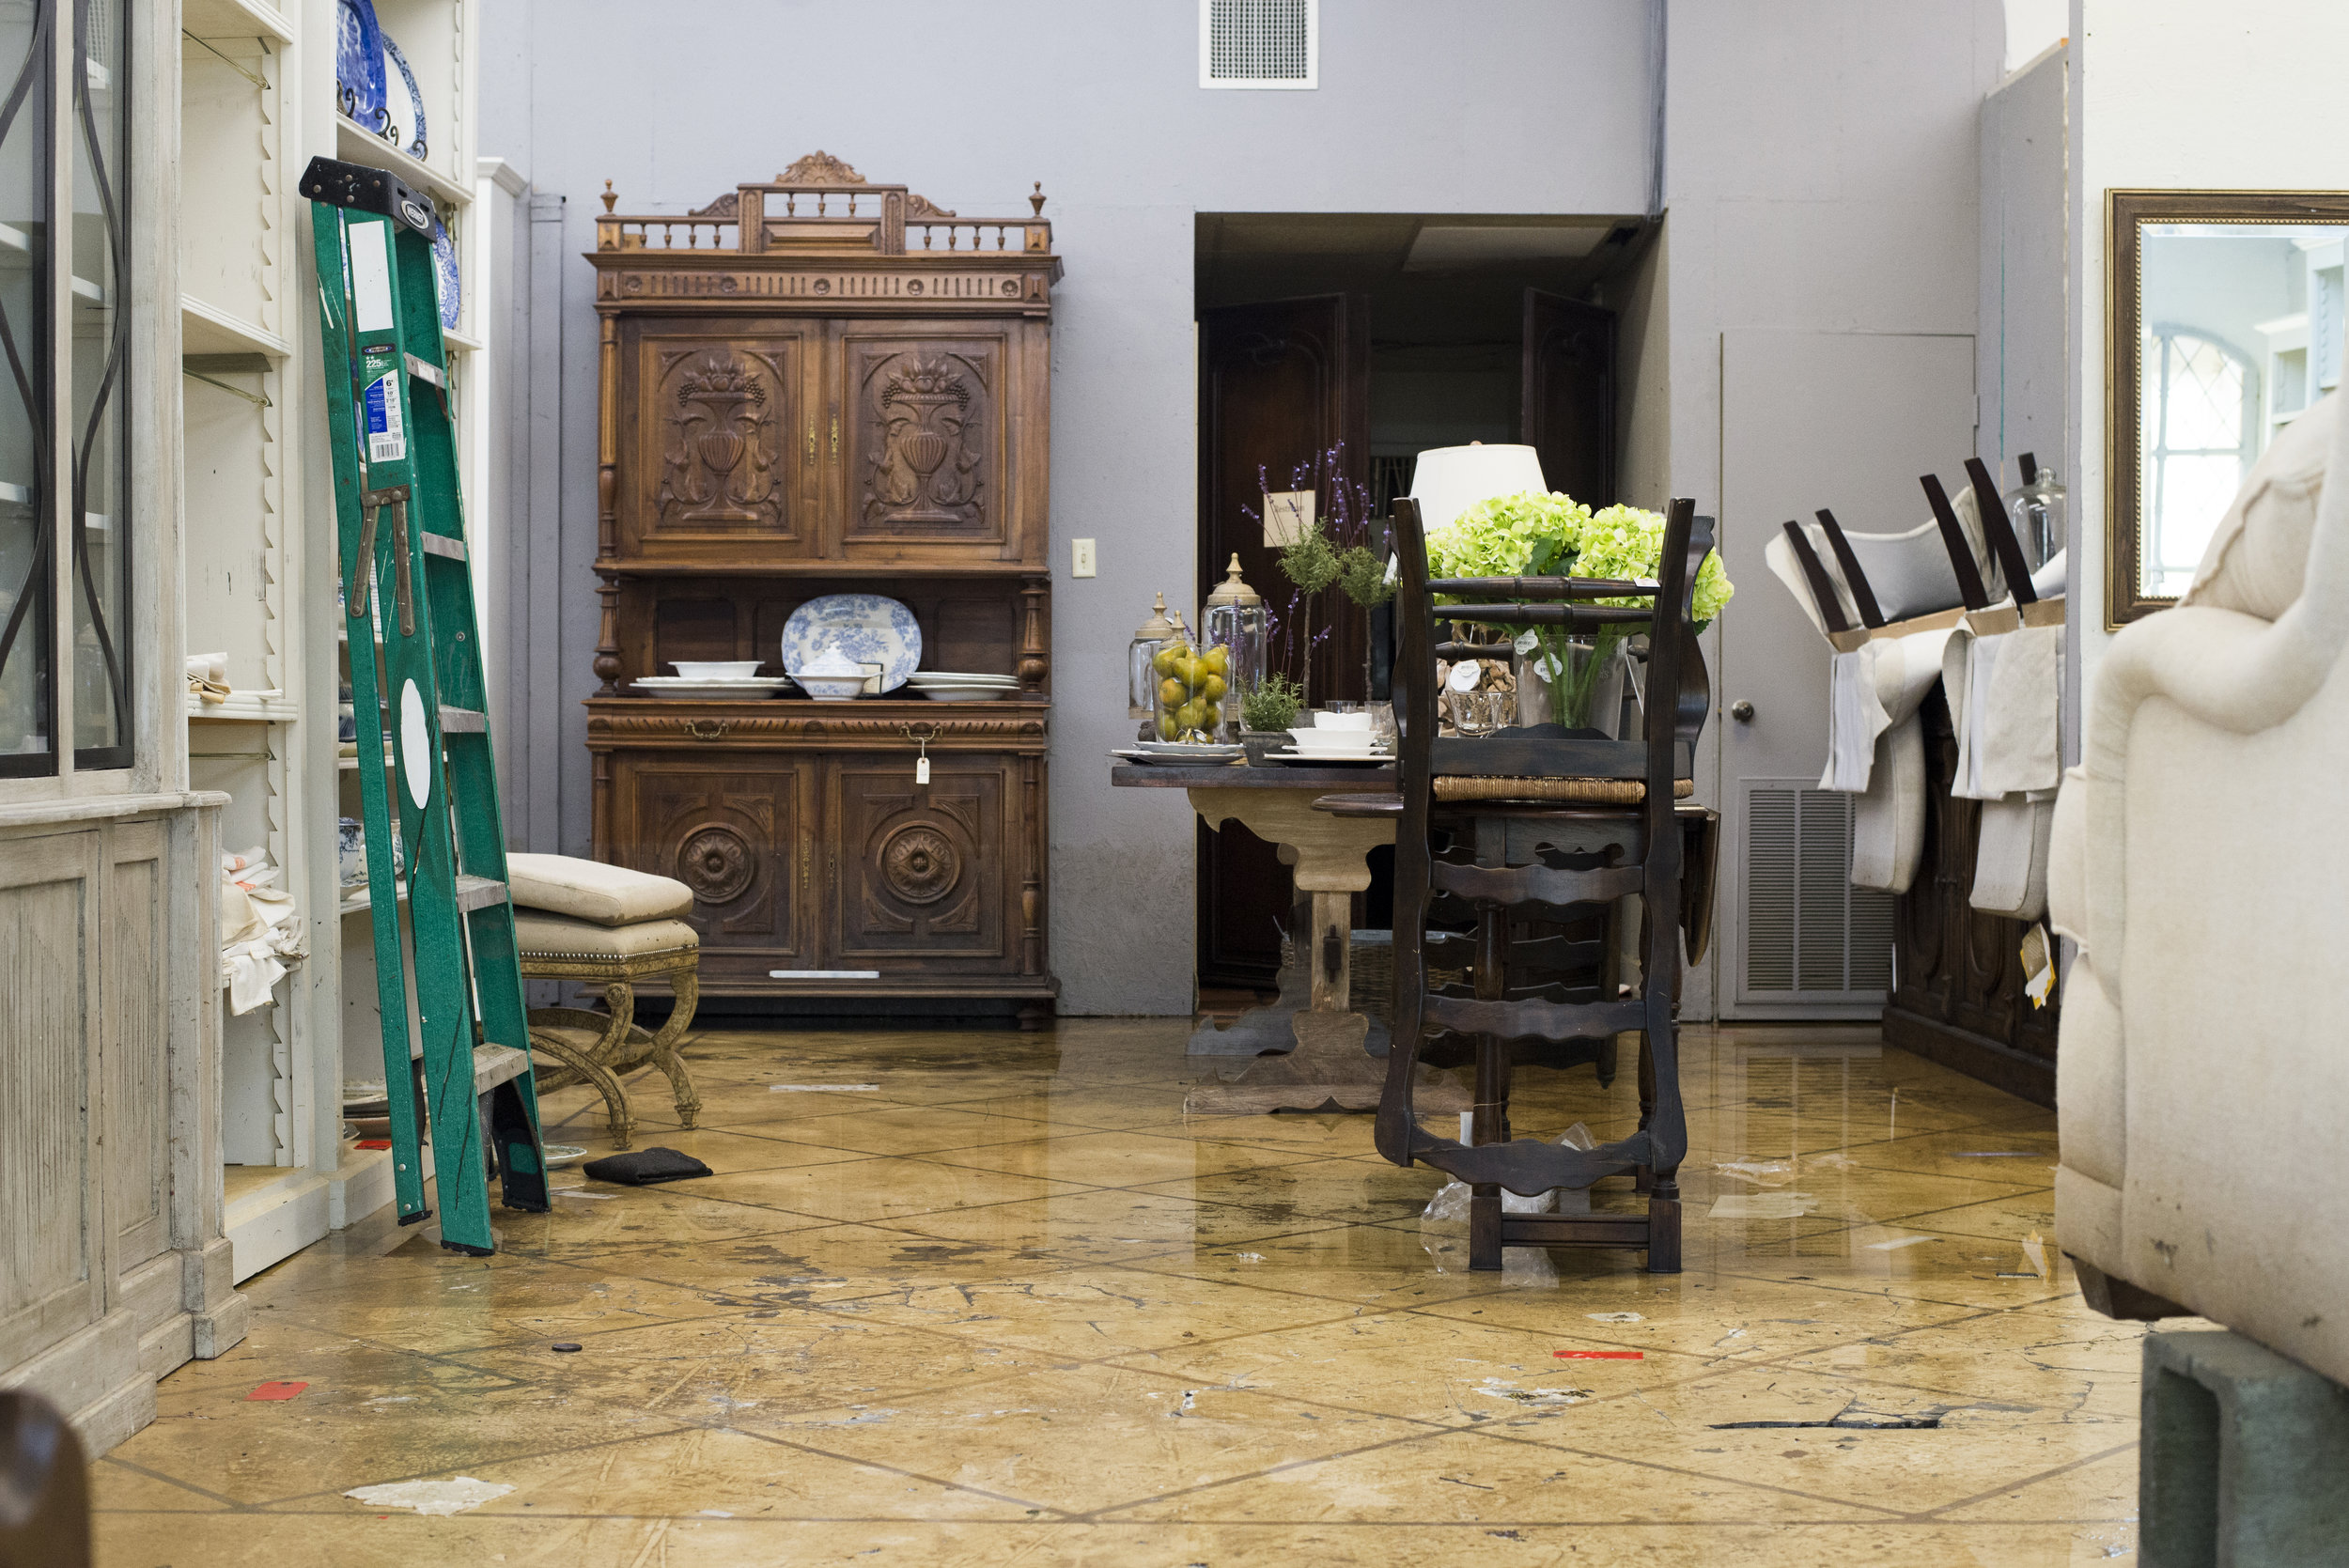 The Royal Standard Flood Damage_Allie Appel_2.jpg